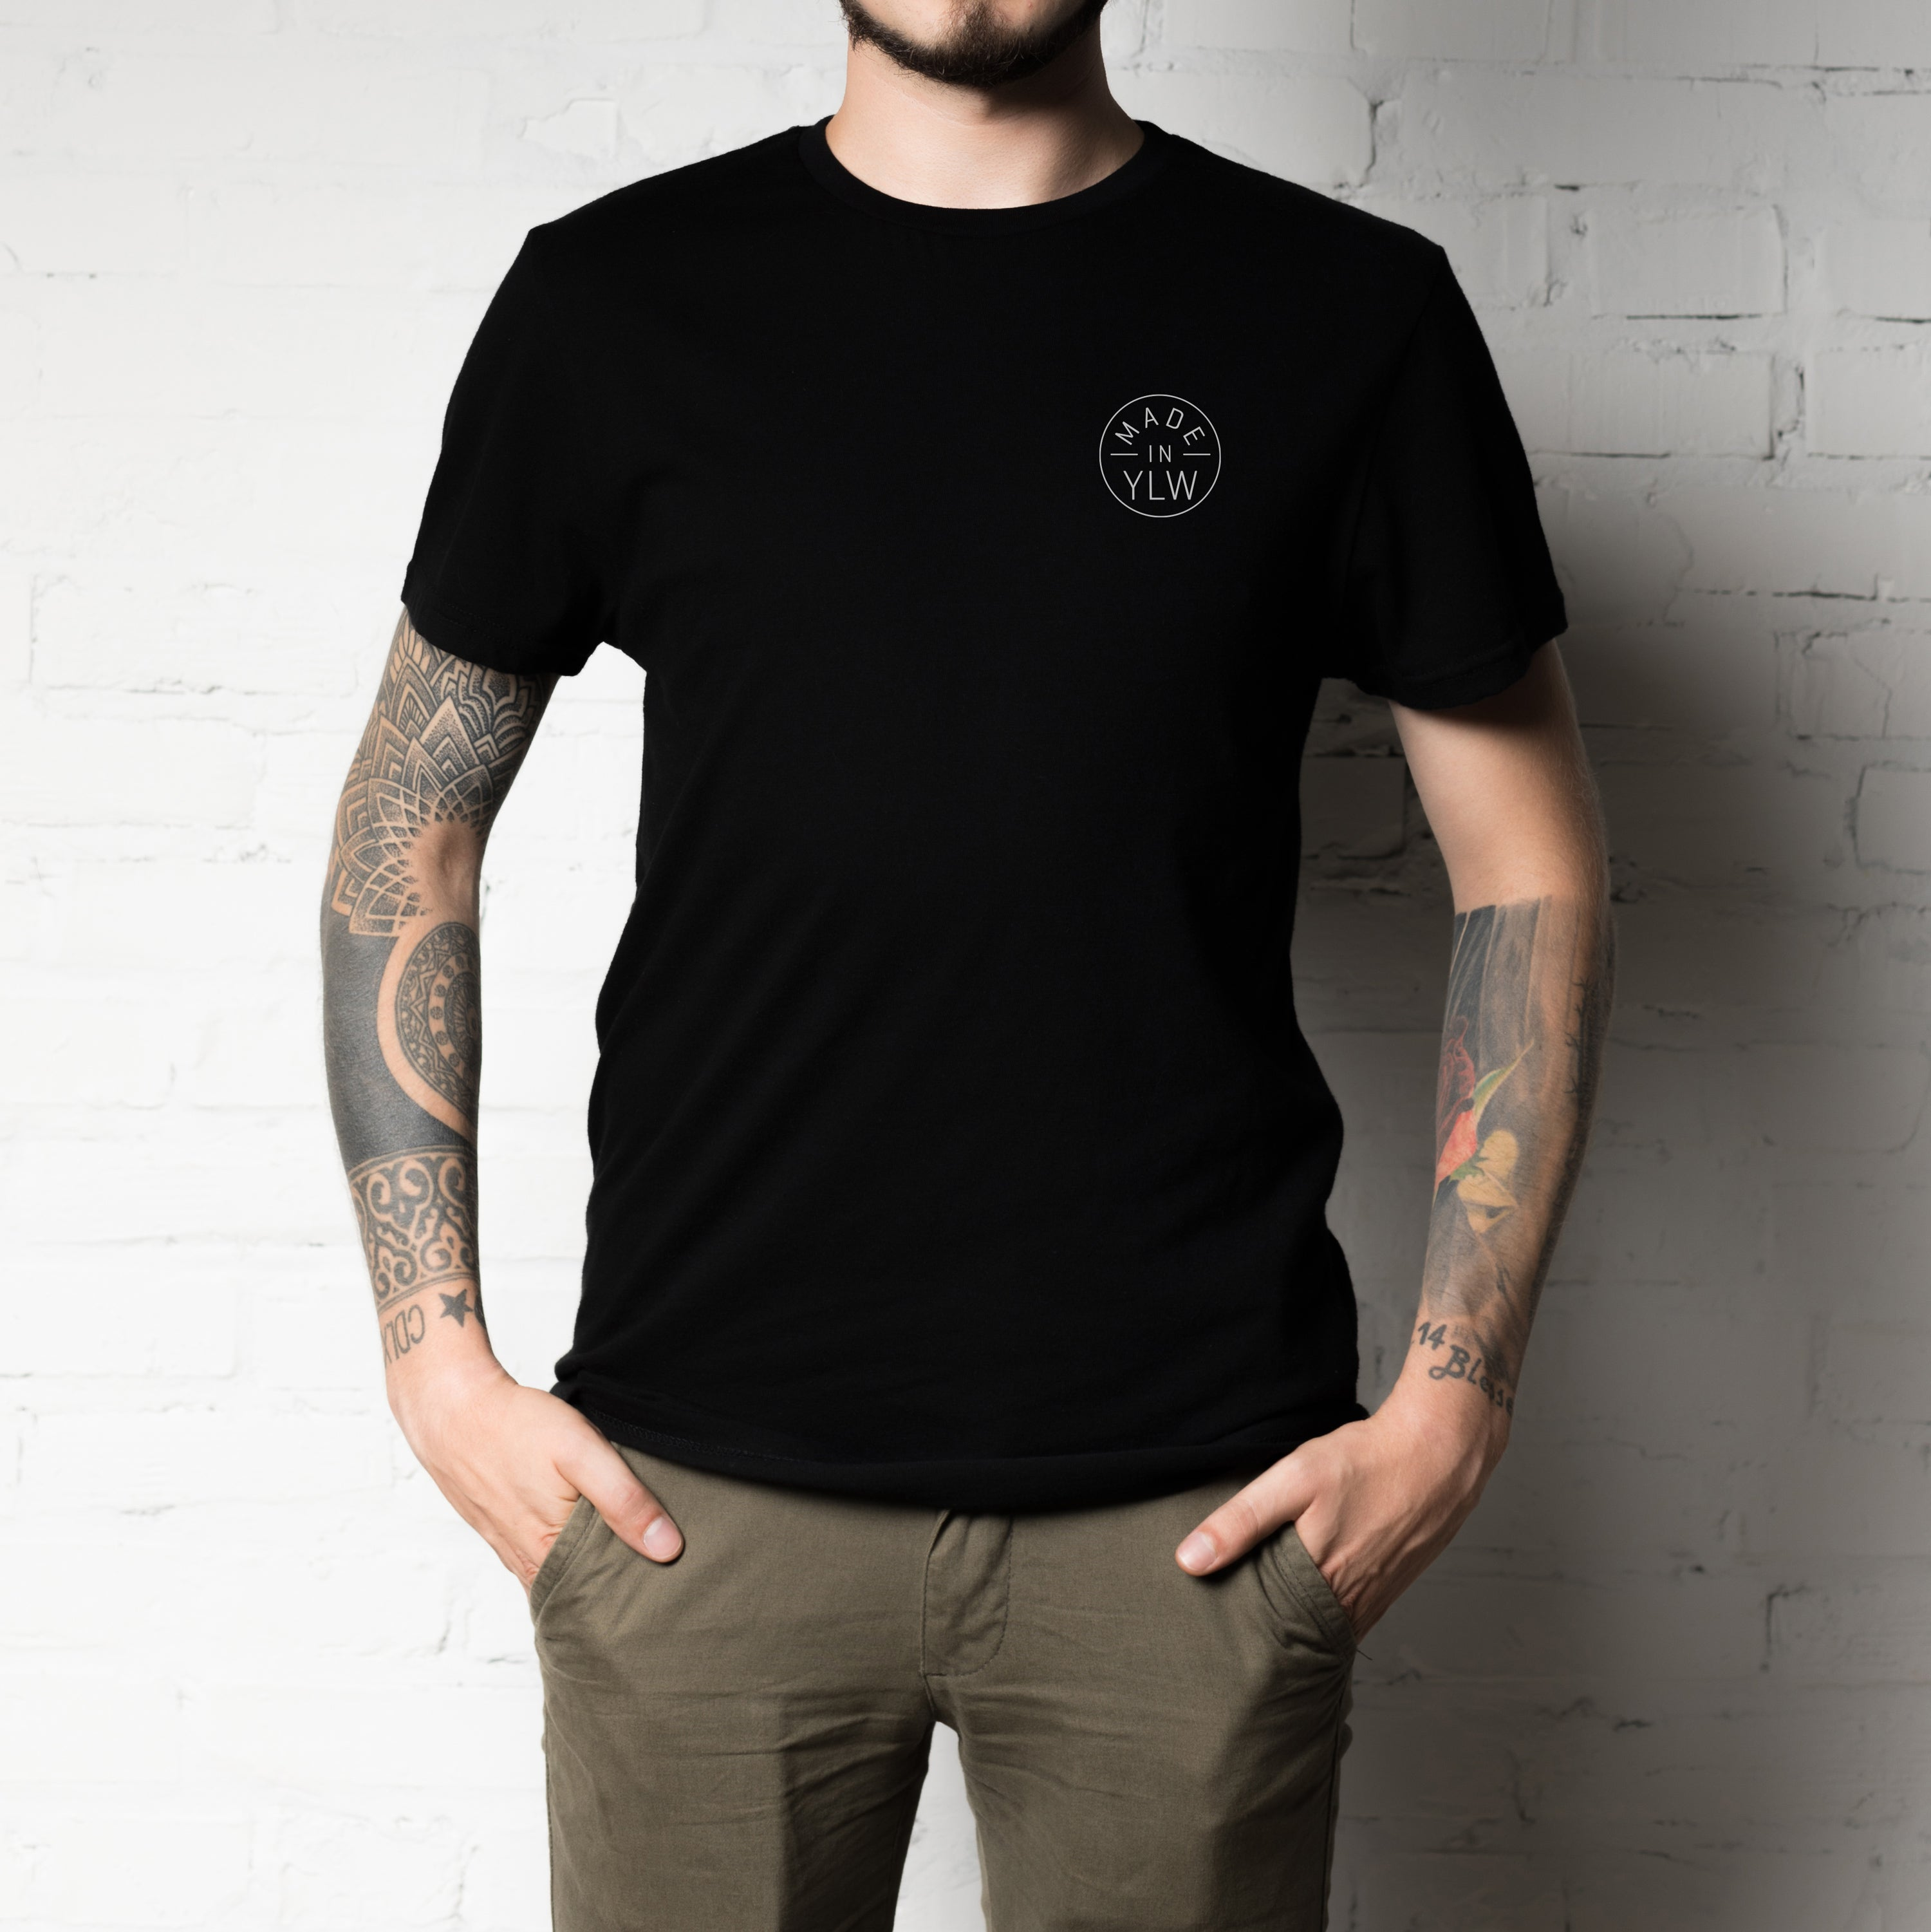 'MADE IN YLW' Black Unisex Tee